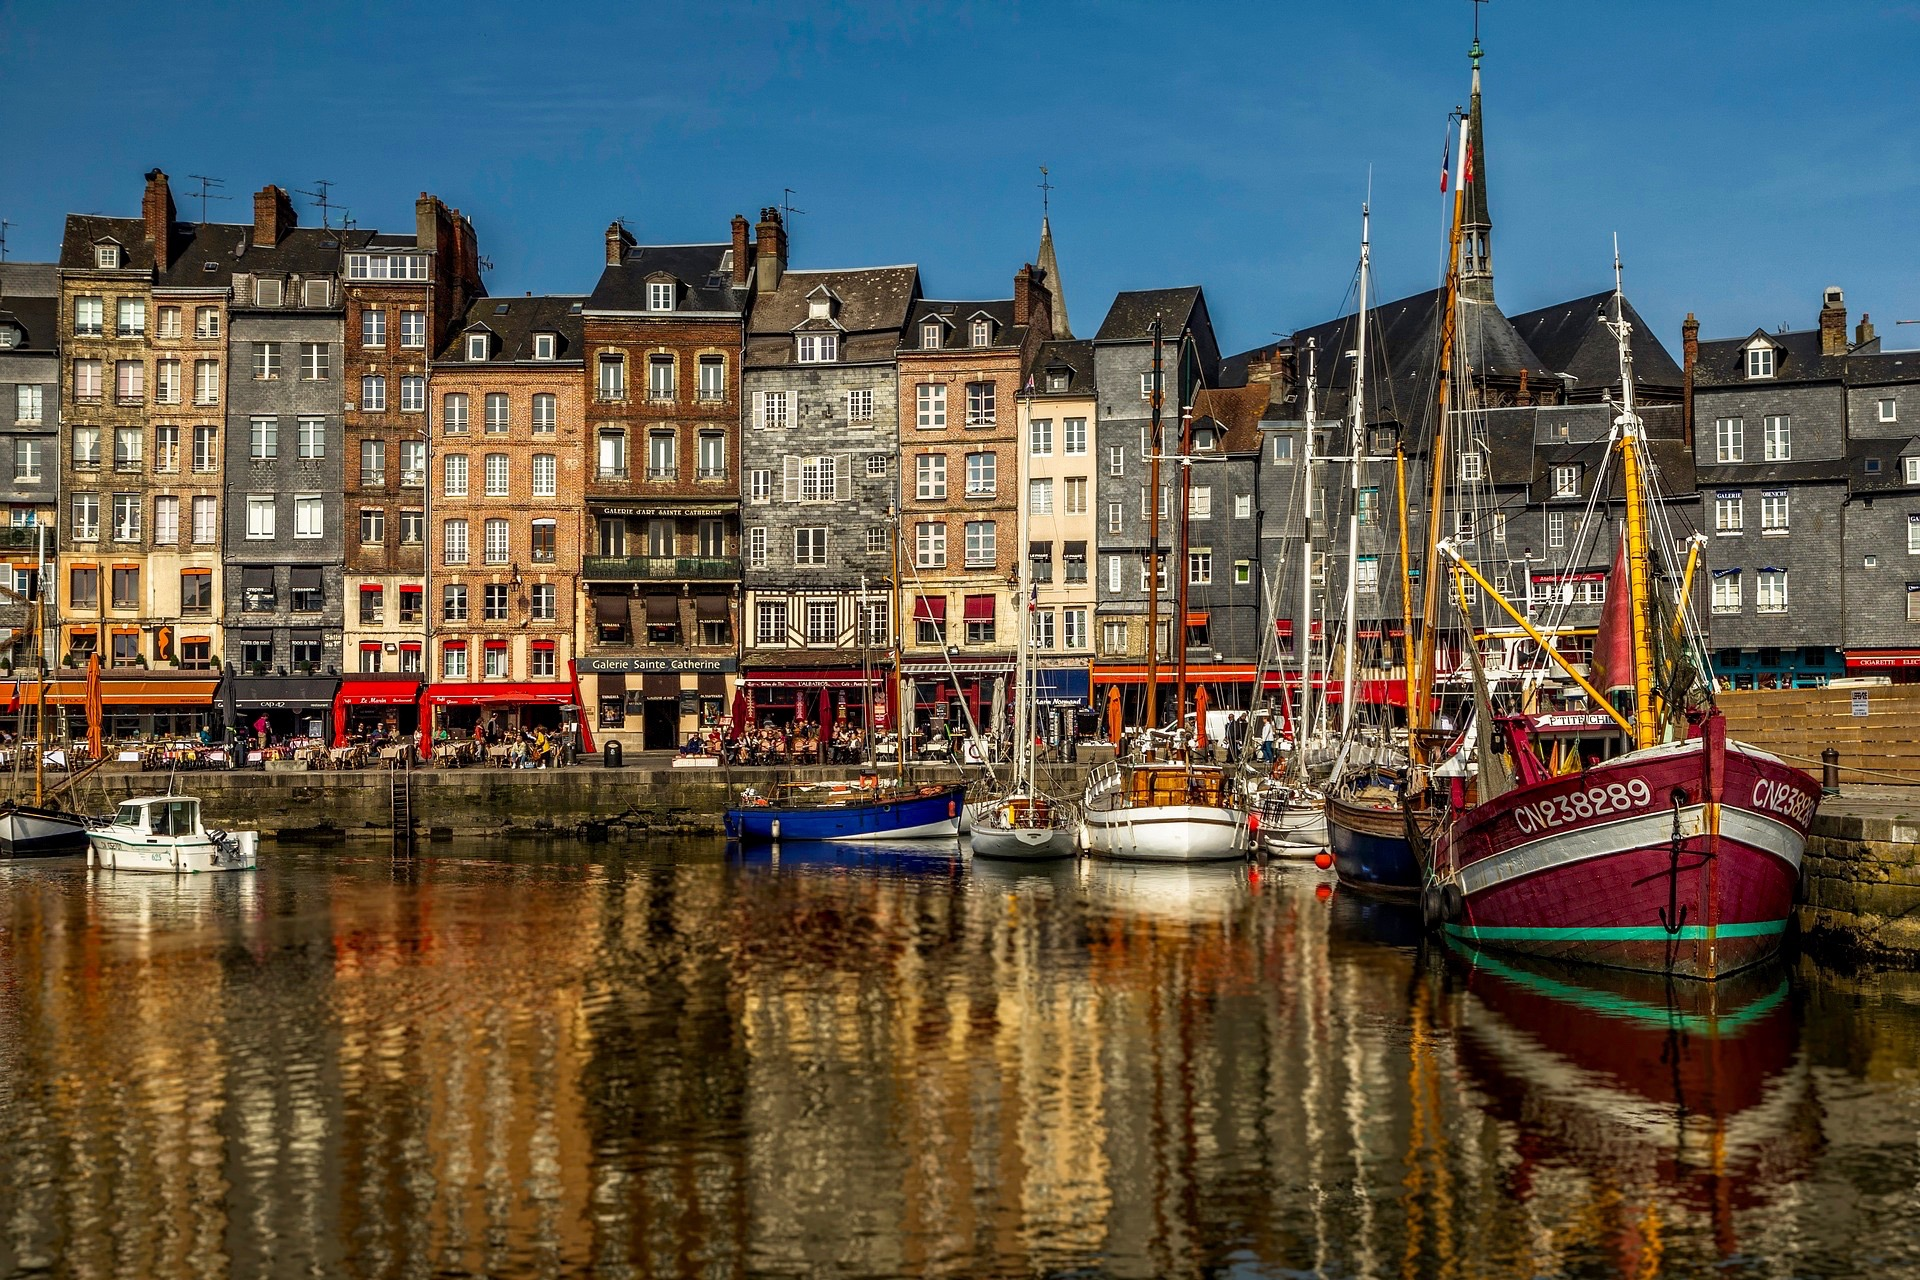 Paris: «Normandy Small-group Experience» — Full Day Live Guided Trip to Rouen, Honfleur, Deauville, Cheese & Calvados Tasting from €139